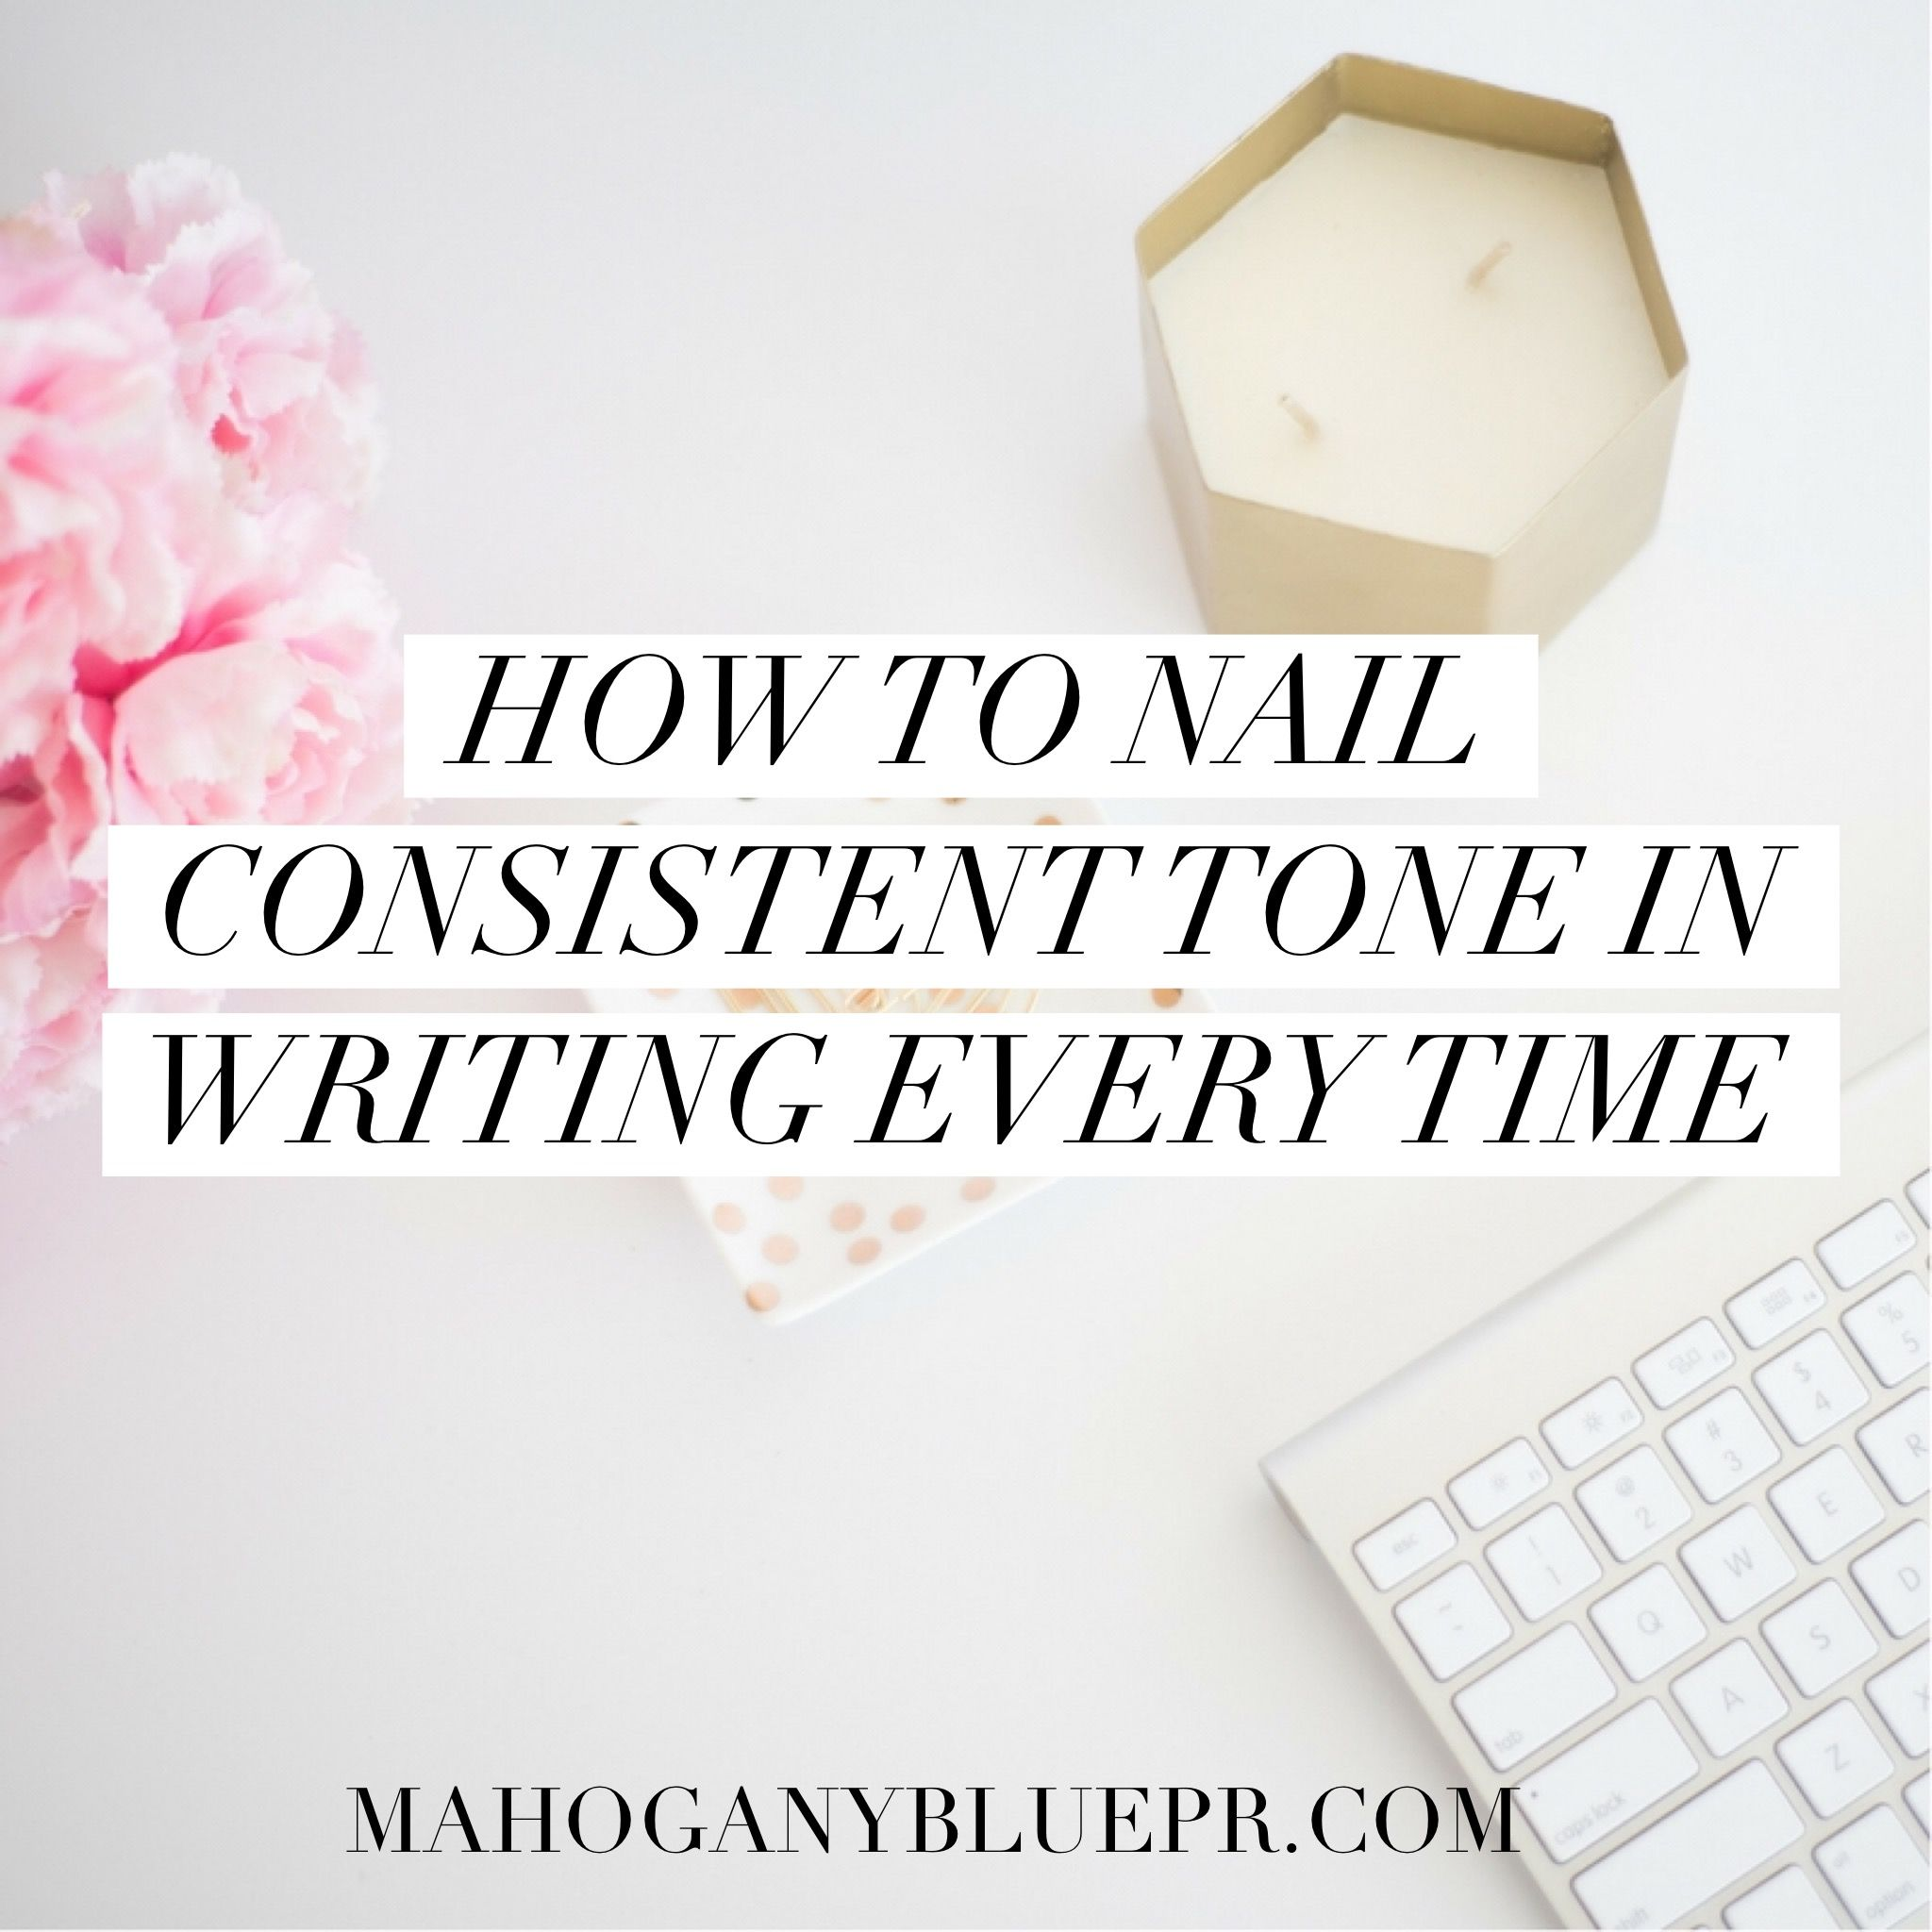 How to Nail Consistent Tone in Writing Every Time